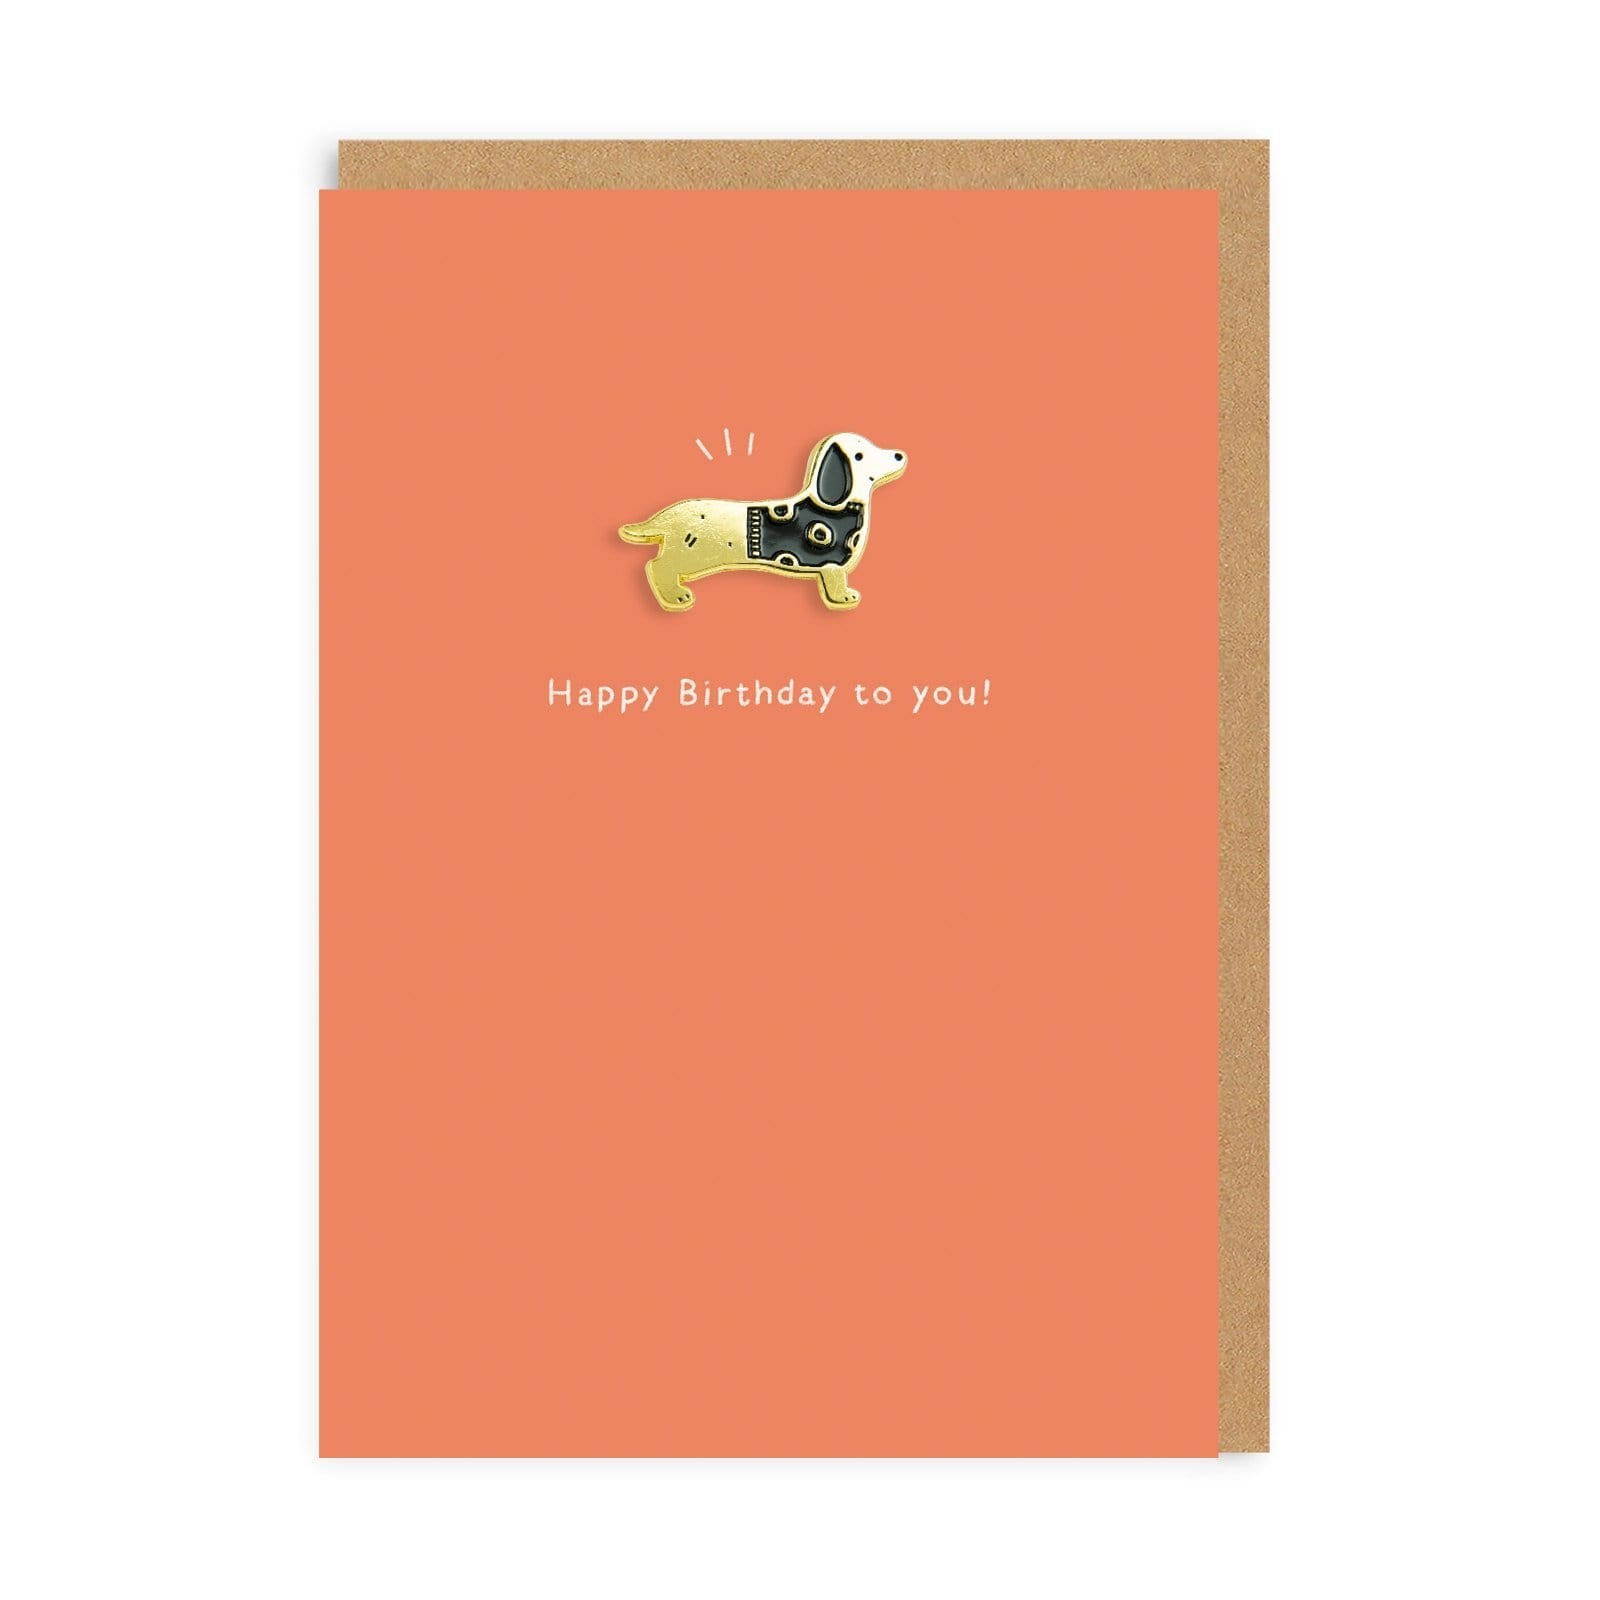 Sausage Dog Enamel Pin Greeting Card